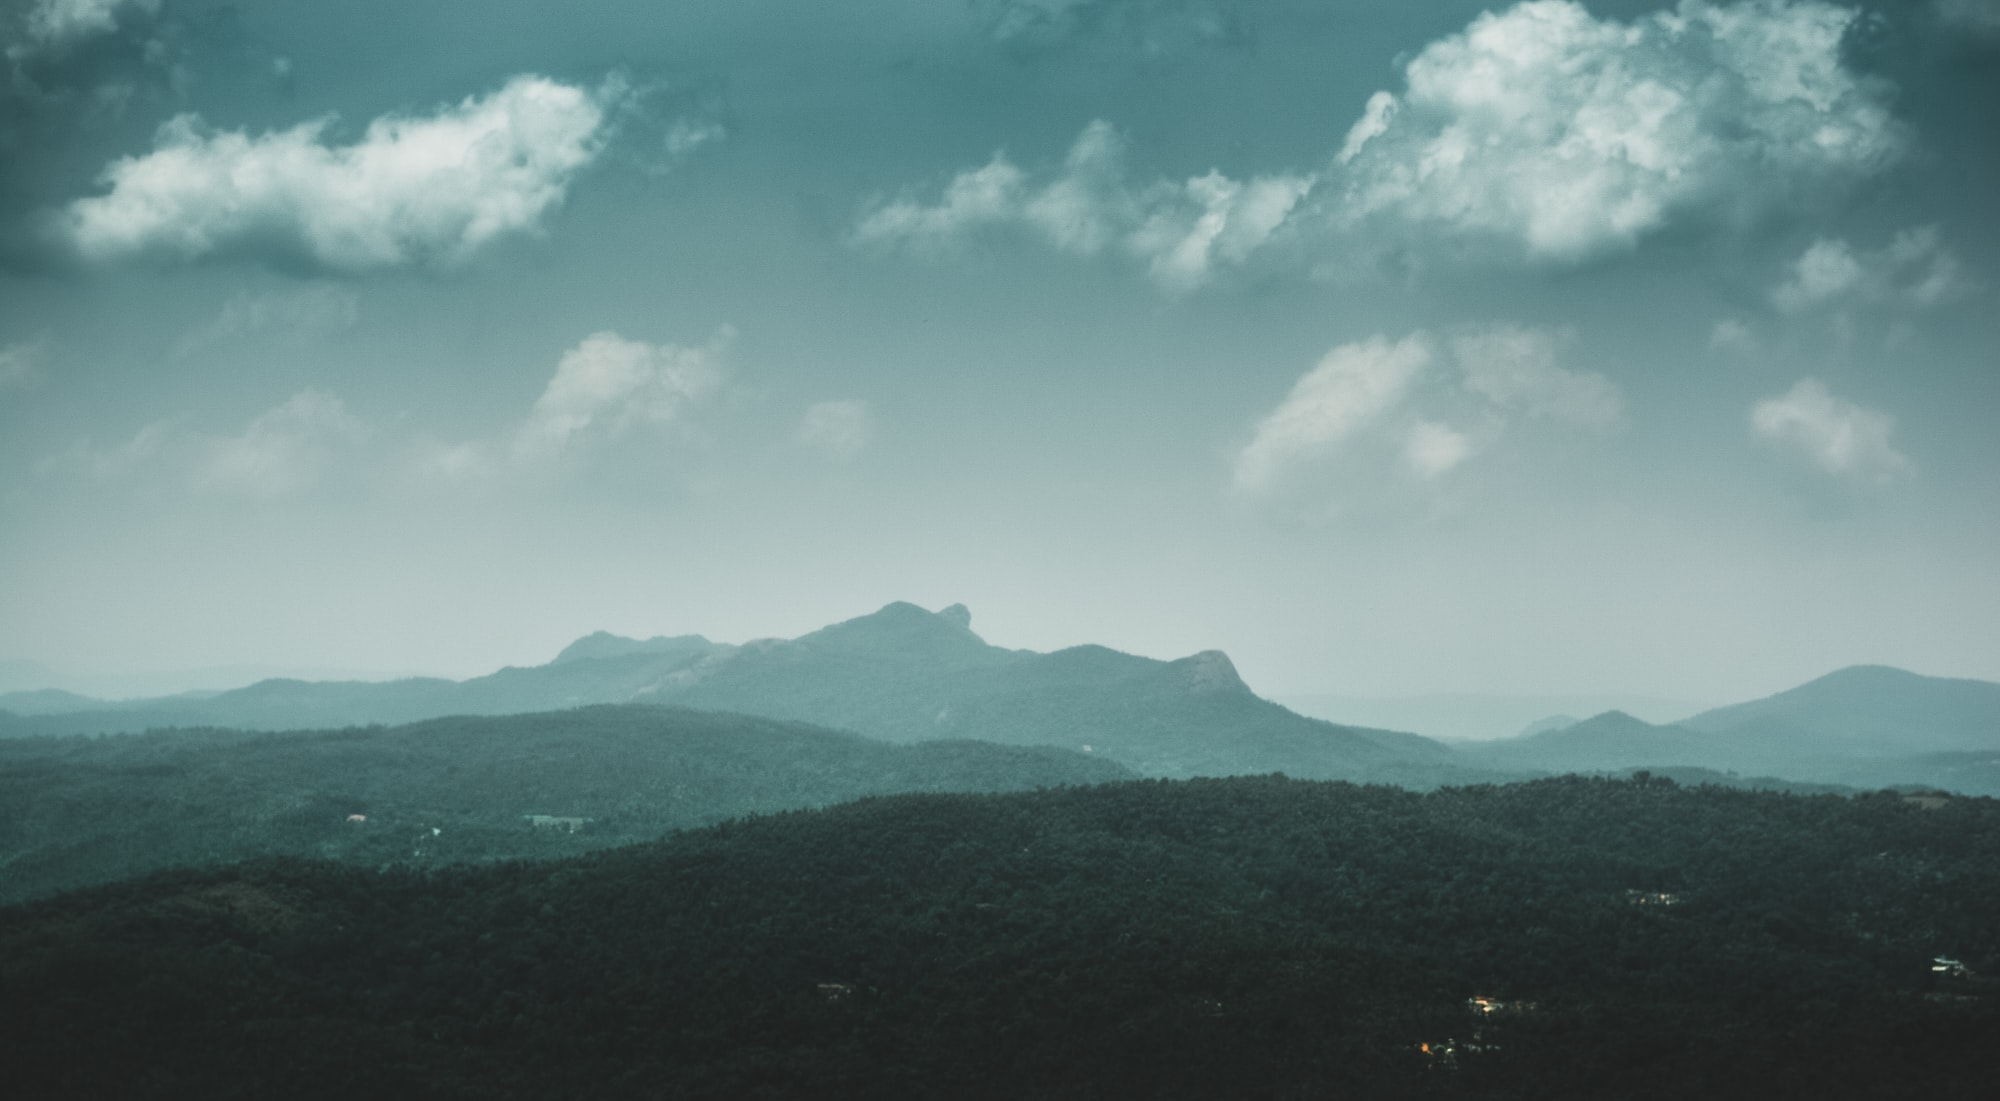 """""""The real voyage of discovery consists not in seeking new landscapes, but in having new eyes."""" Shot this at a quick stop while driving through the hills in Ooty, India."""